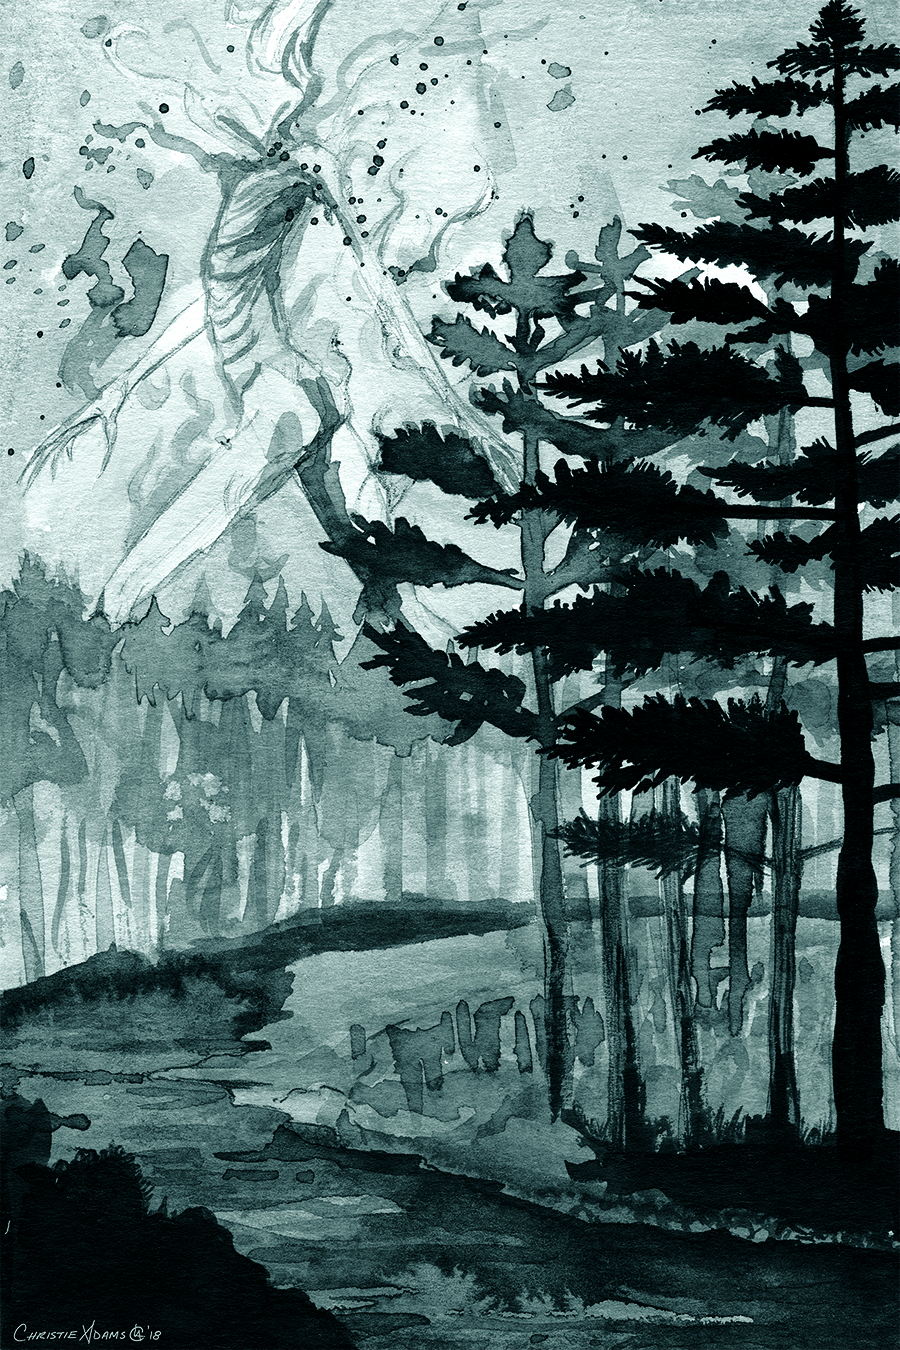 2018_BW_Inktober_forestspirit_website.jpg